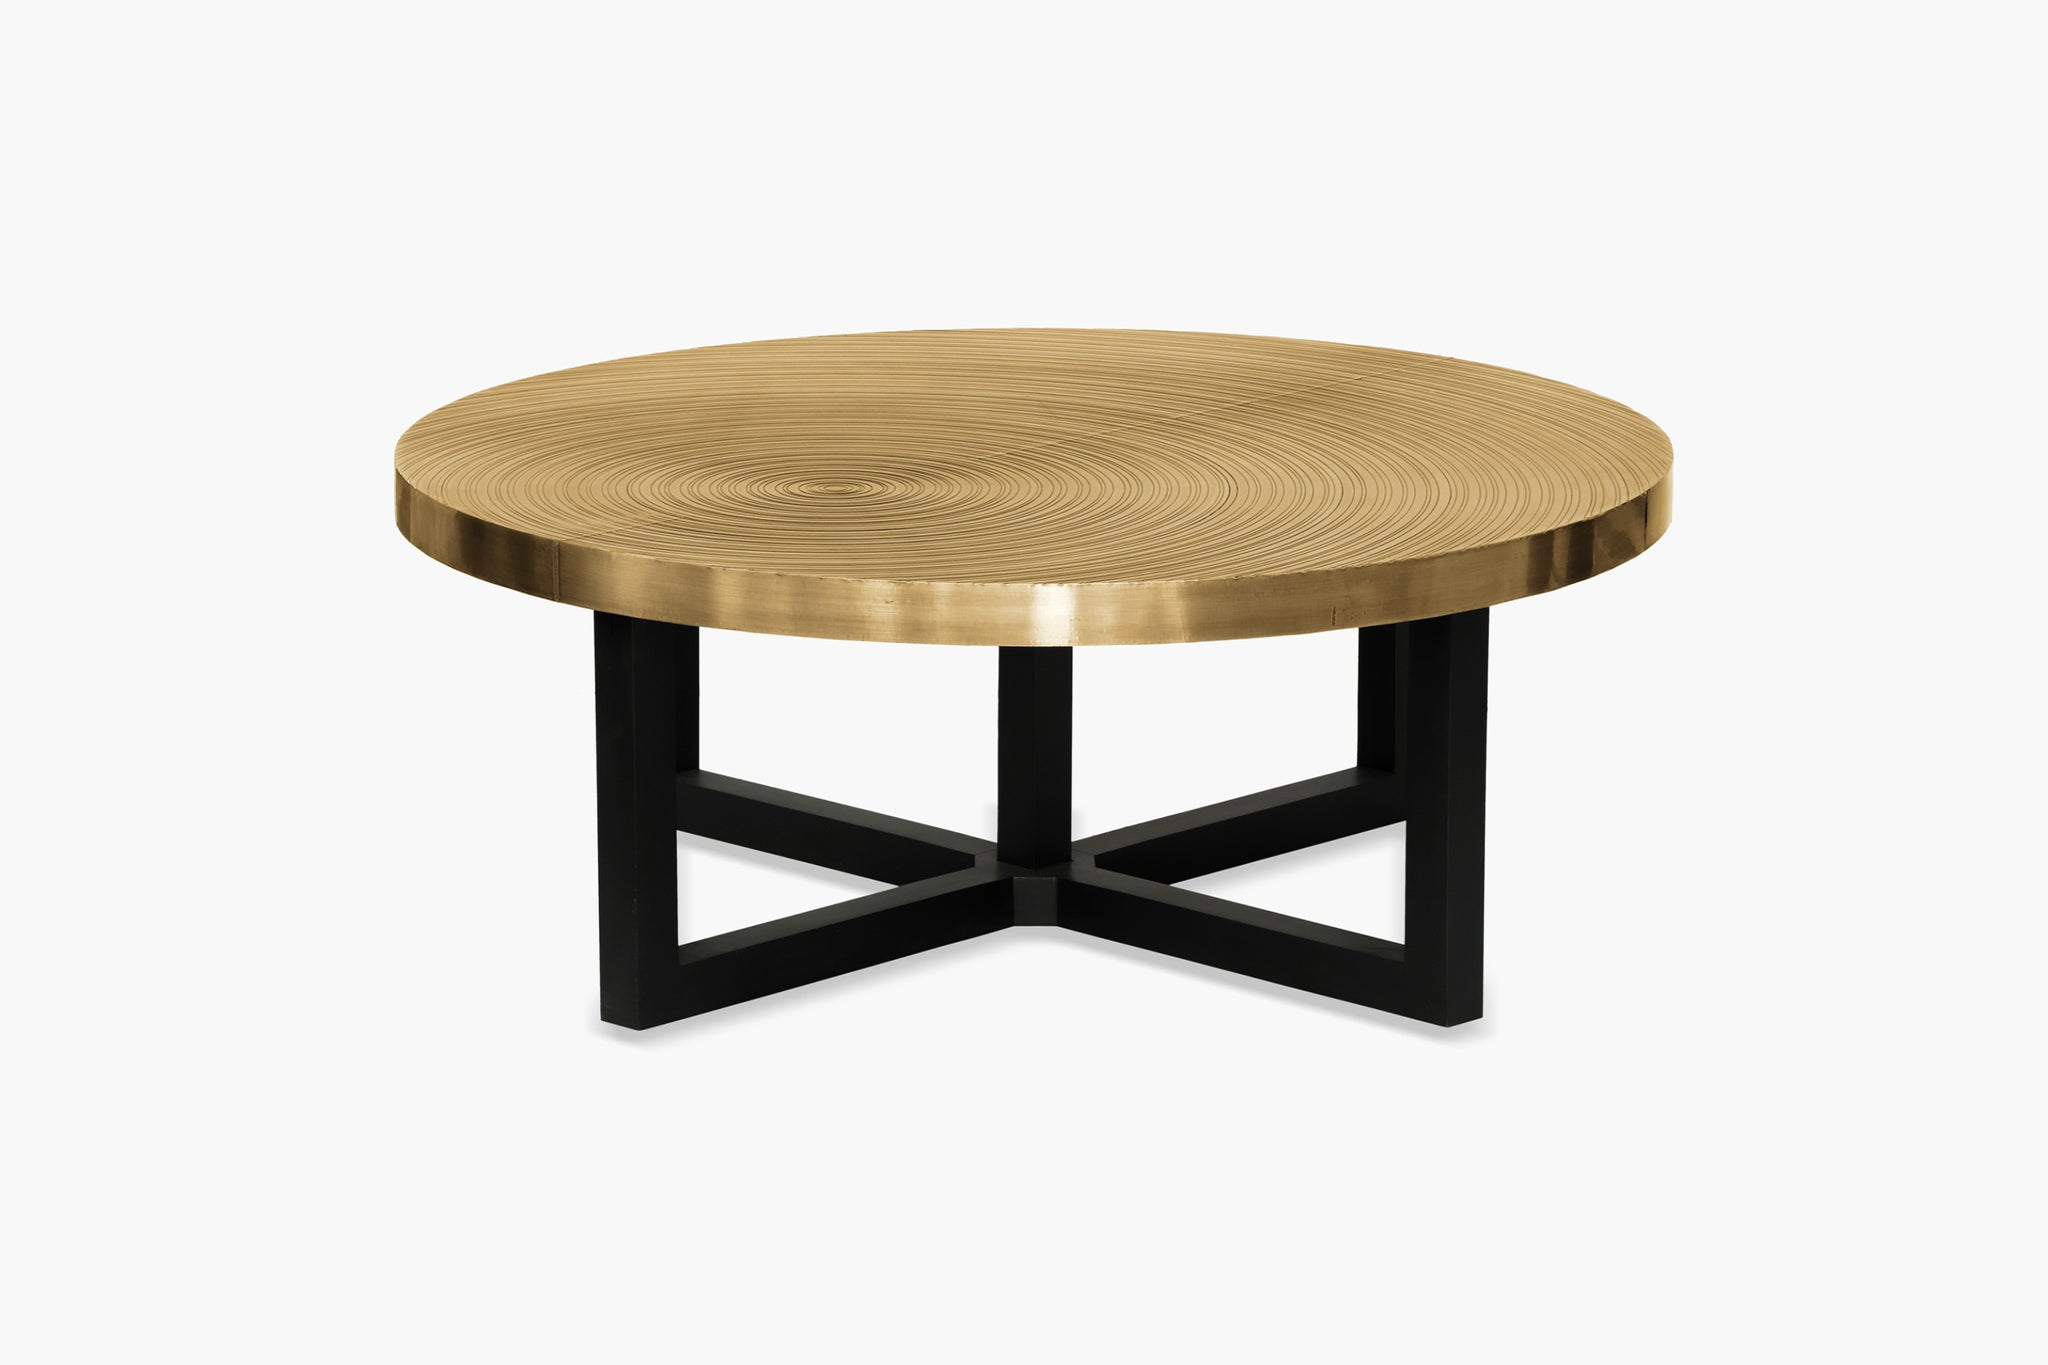 Demeter Round Coffee Table - thumbnail 1